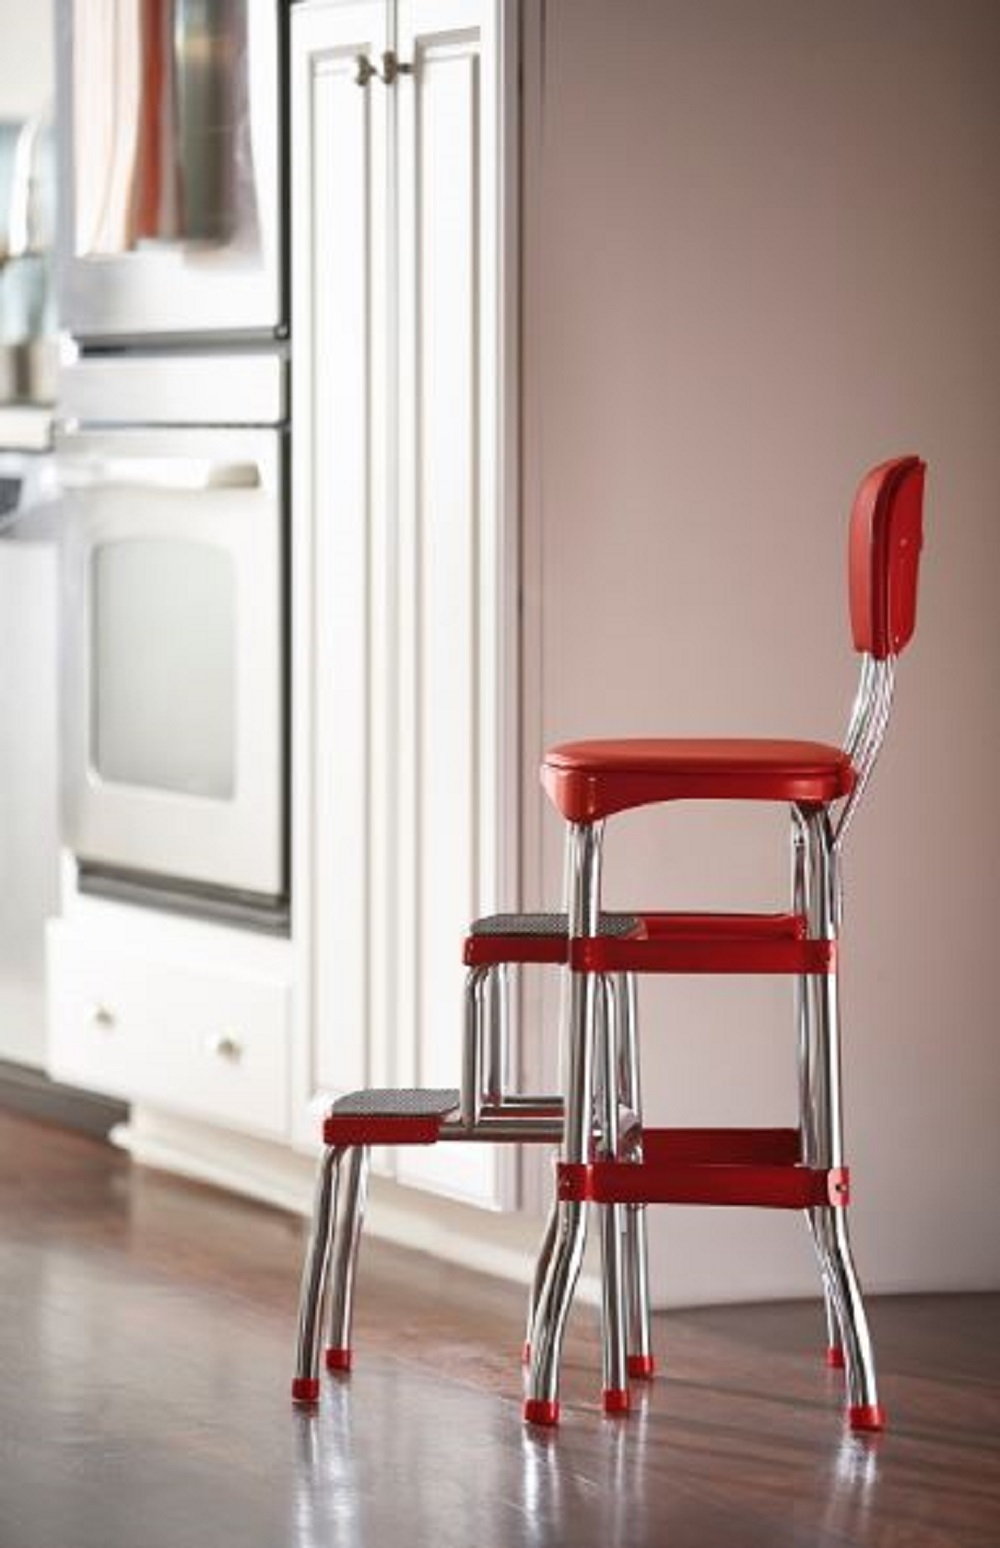 Red Counter Stool Vintage Retro Kitchen Chair Bar Seat Pull Out Steps Climb